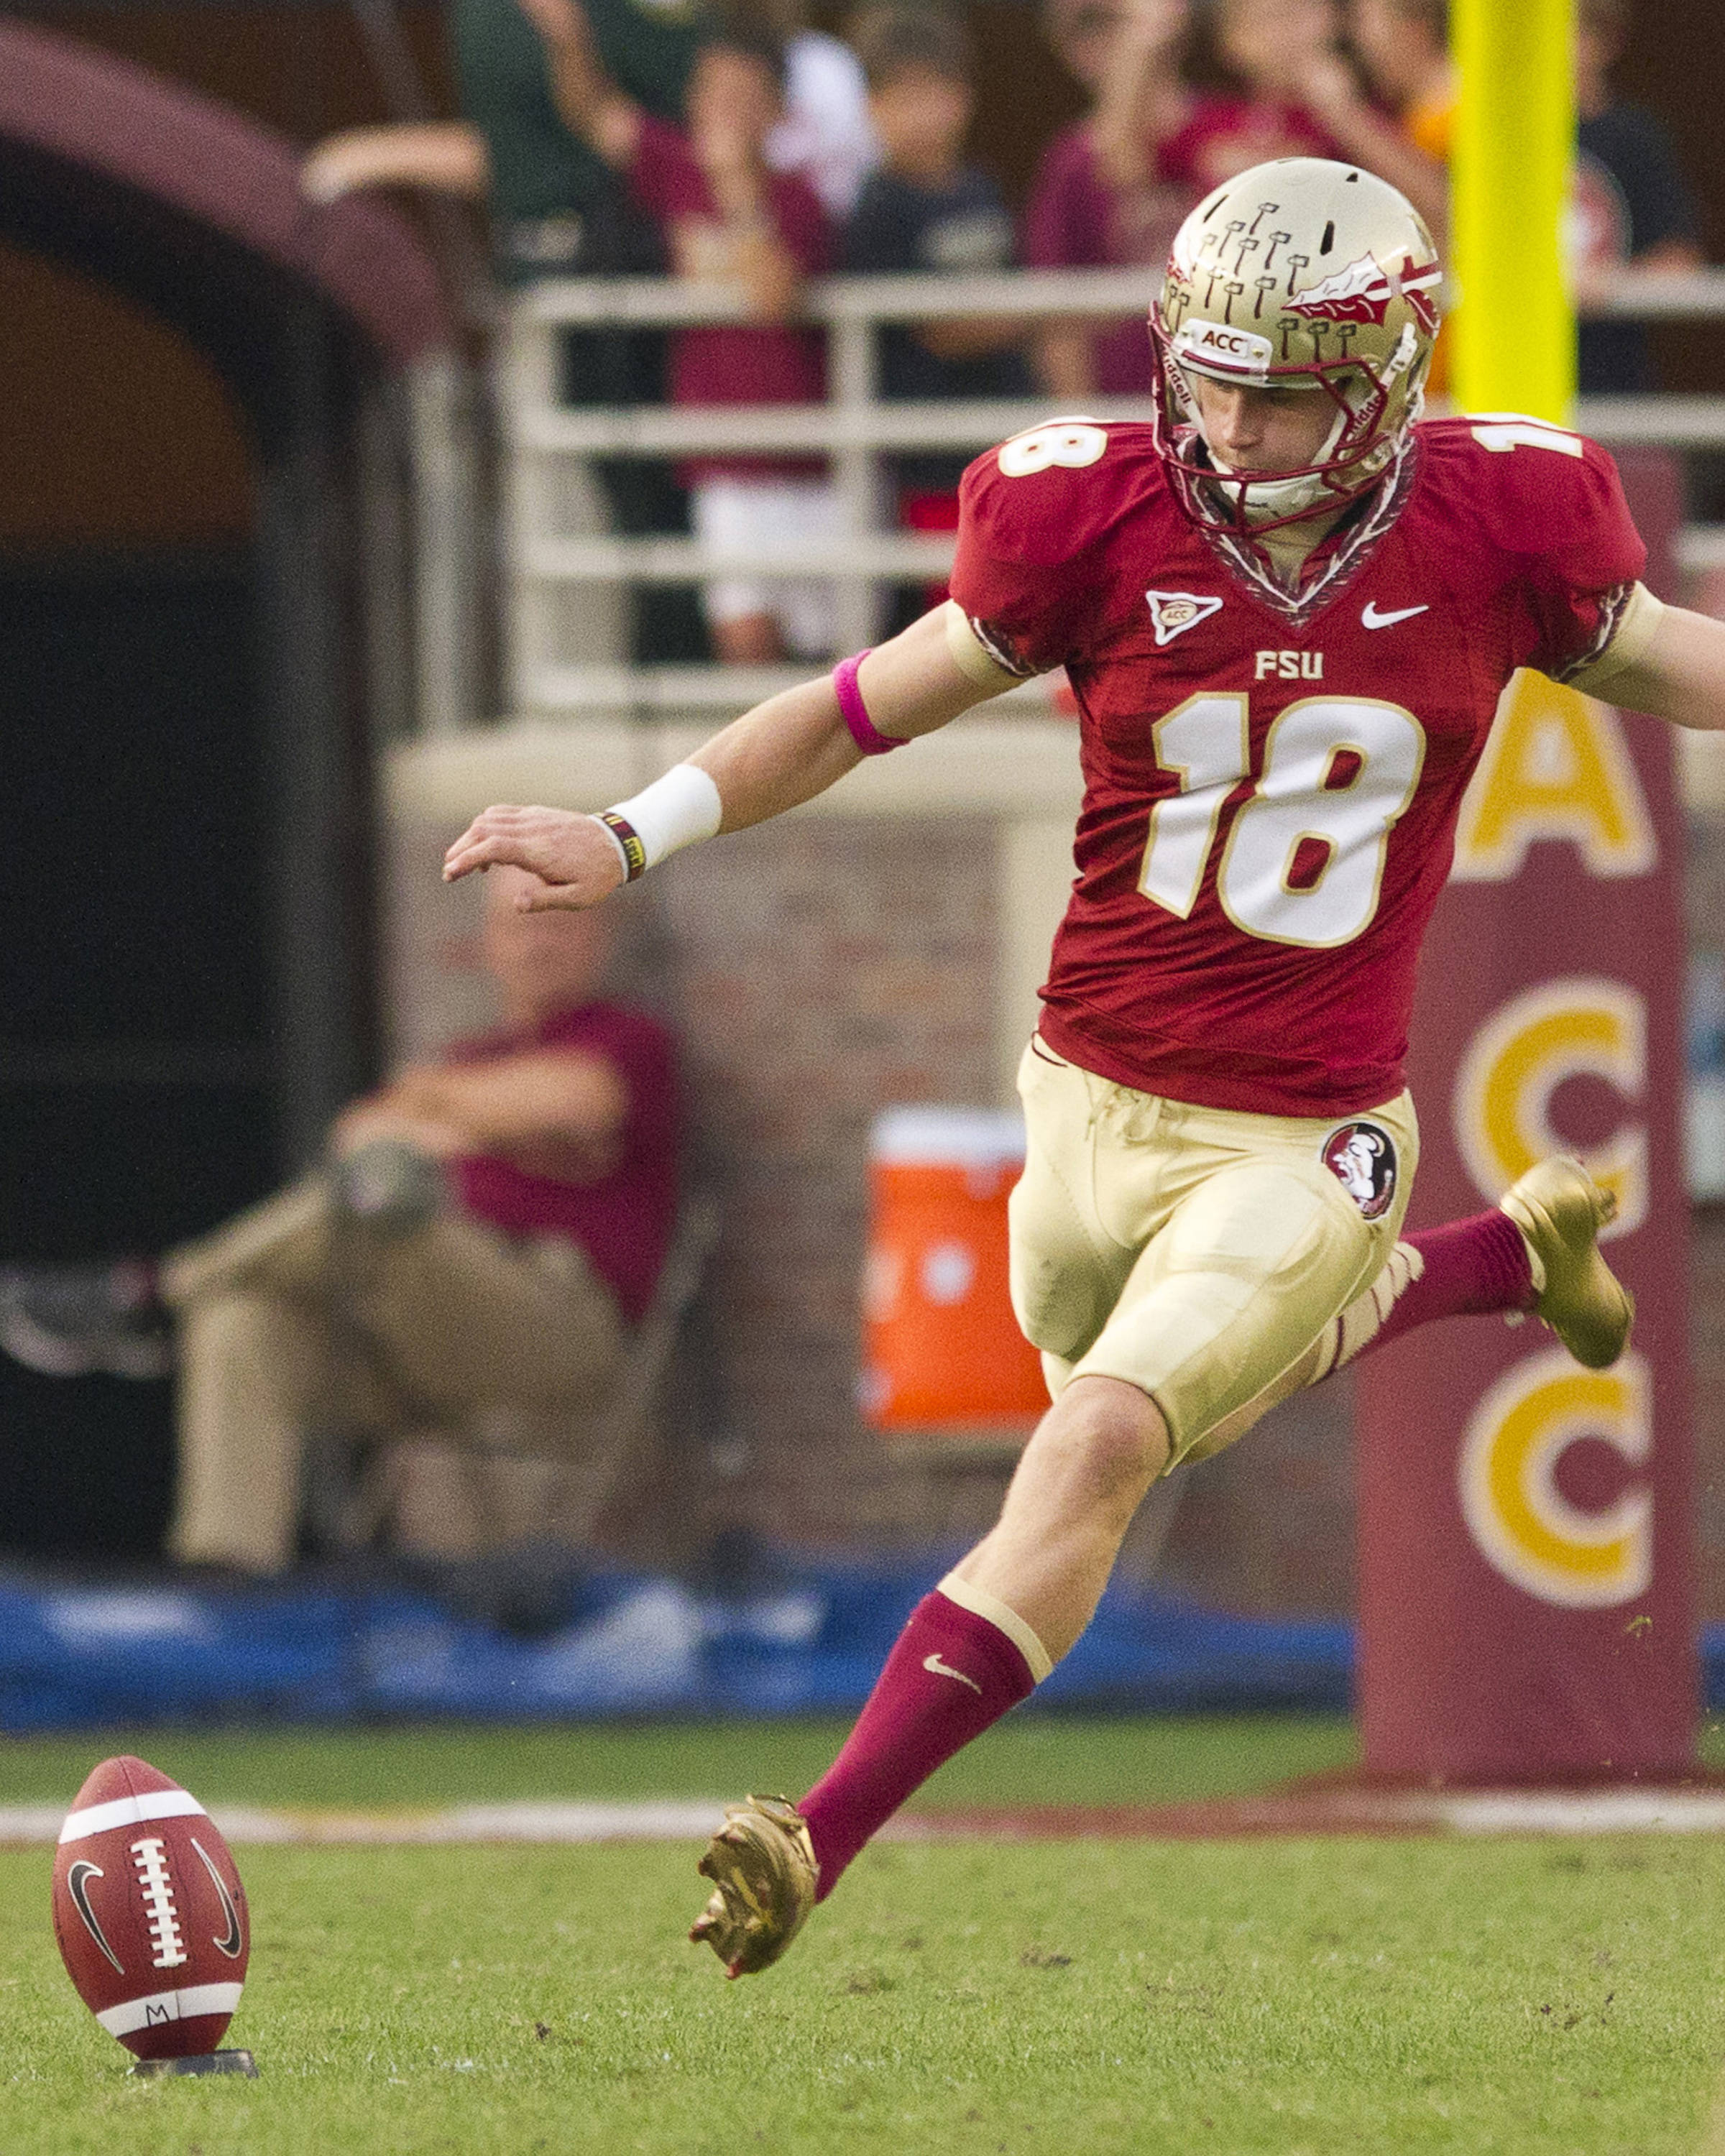 Dustin Hopkins (18) kicks off during FSU's 48-7 victory over Duke on October 27, 2012 in Tallahassee, Fla.